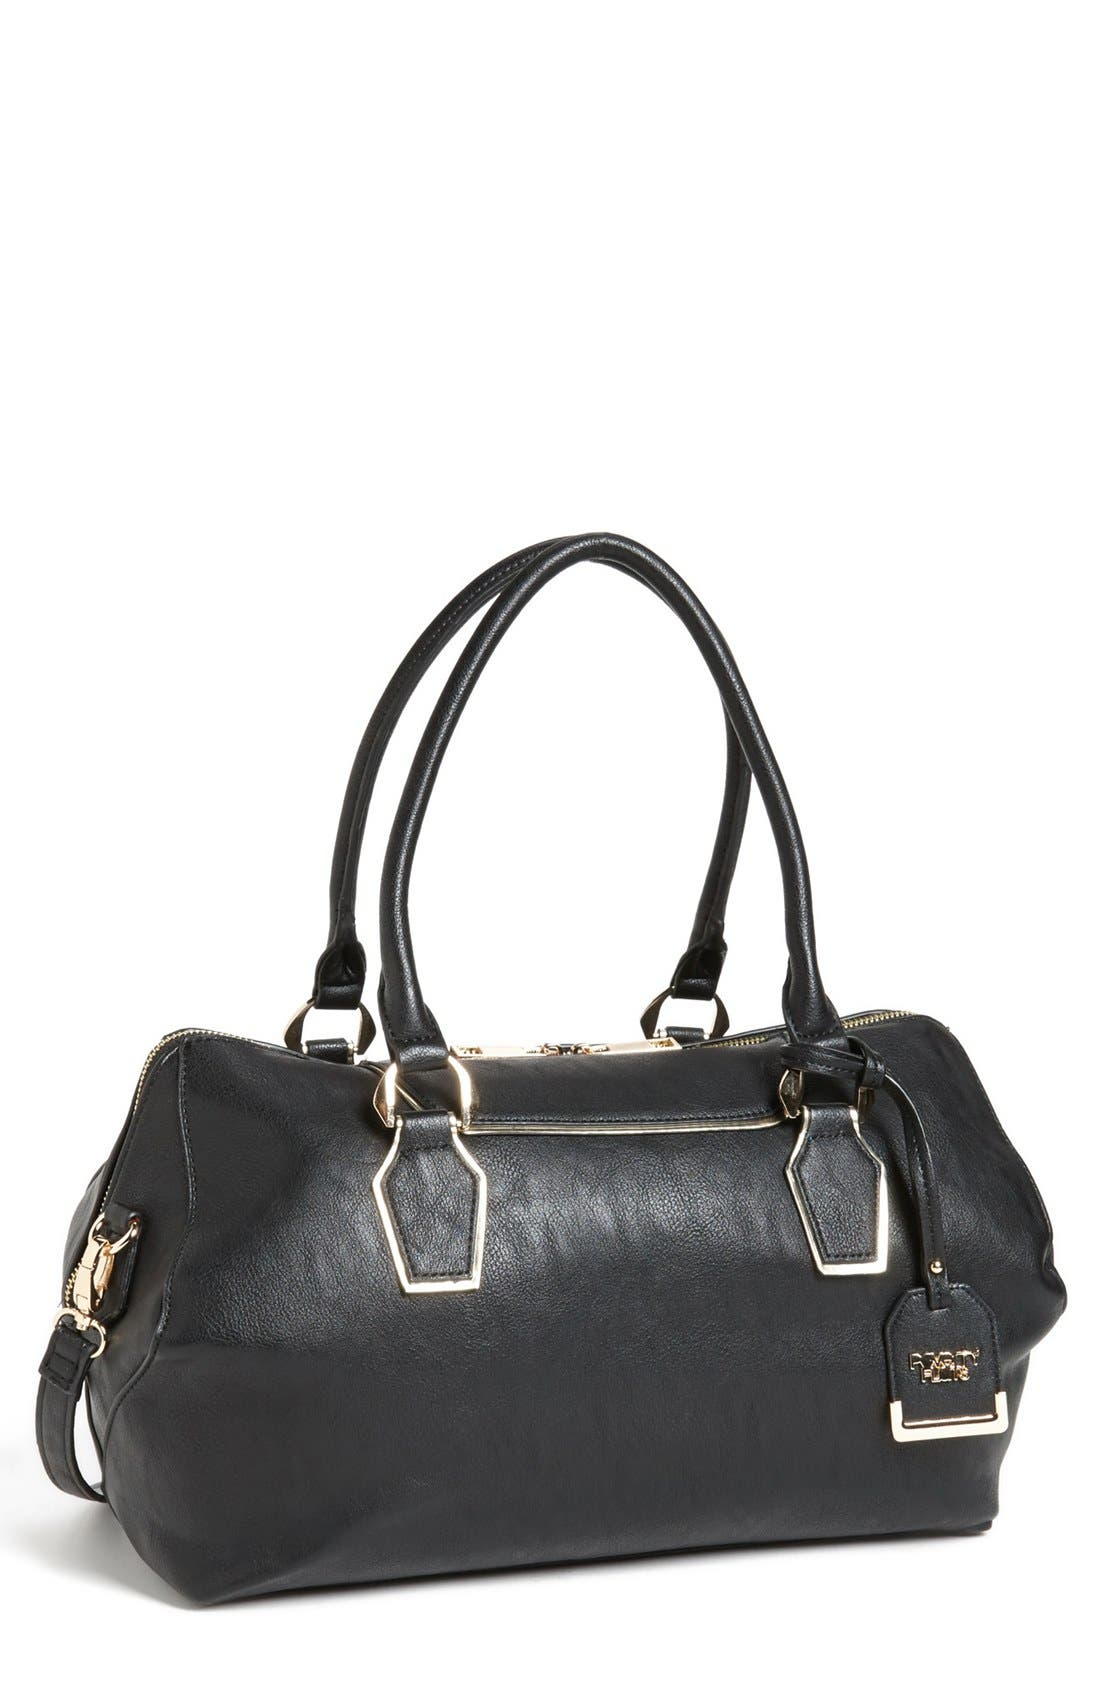 POVERTY FLATS BY RIAN Faux Leather Satchel, Main, color, 001